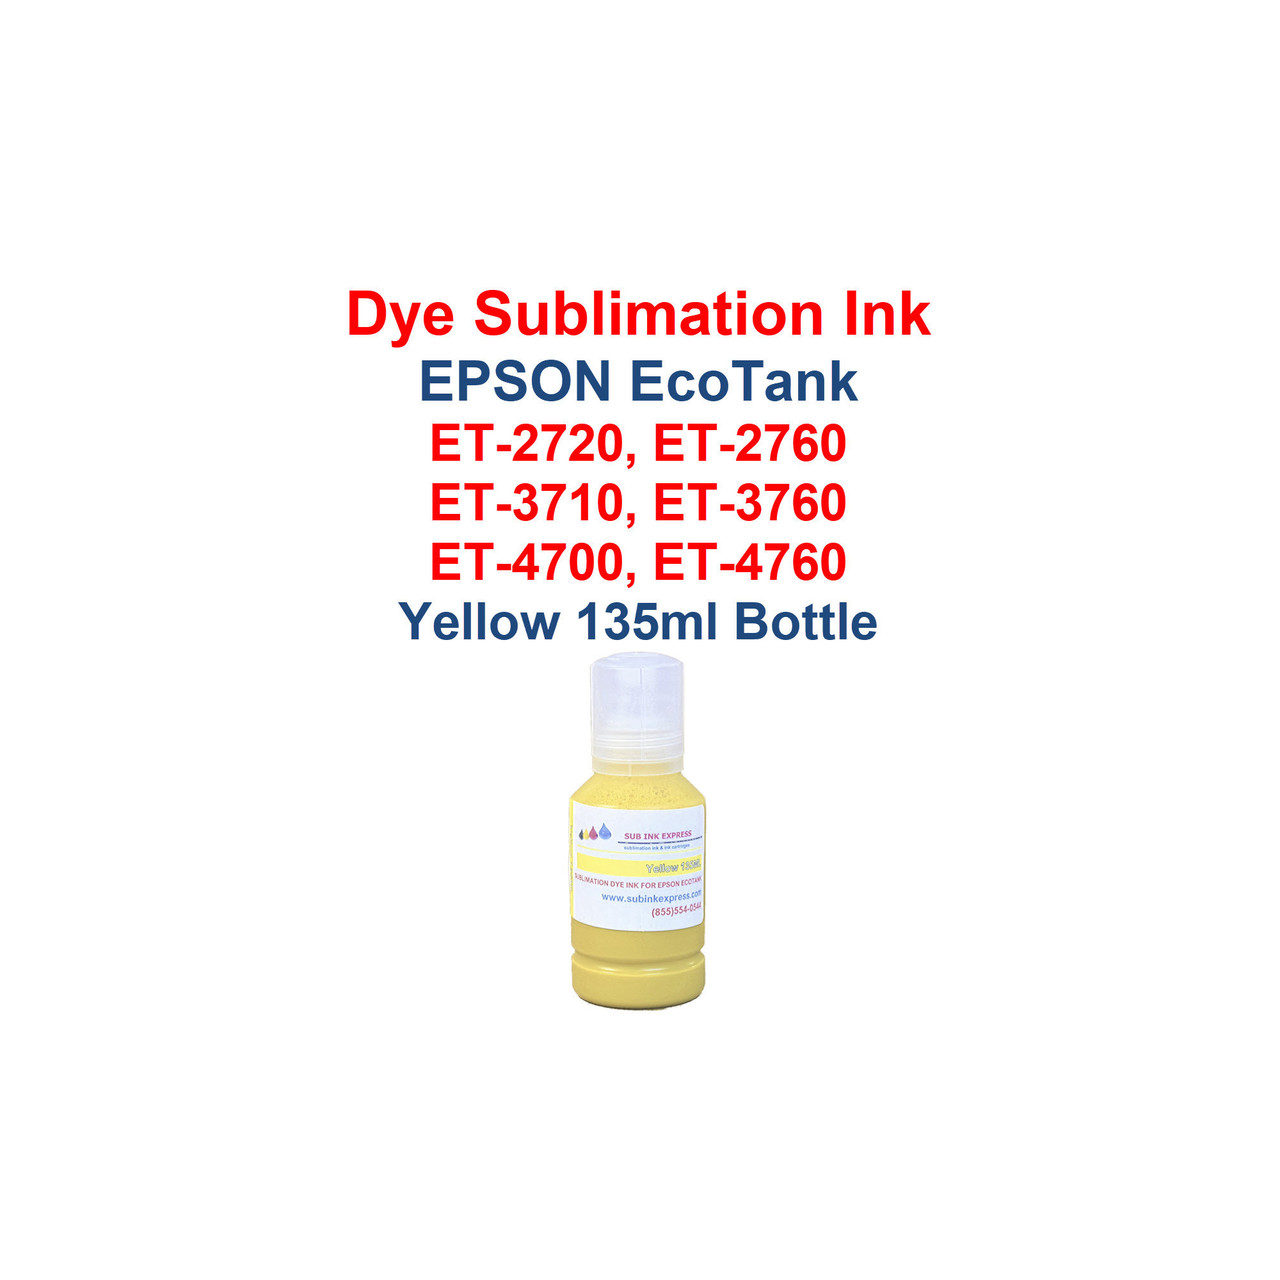 1 - Yellow 135ml bottle Dye Sublimation ink for Epson EcoTank models: et-2720 printer  et-2760 printer  et-3710 printer  et-3760 printer  et-4700 printer  et-4760 printer  Bottles have the New fill cap for filling the printer with ink  Package includes: Yellow 135ml bottles Dye Sublimation ink -  1x Yellow  Dye Sublimation Ink  Heat Transfer printing  T-Shirts, Hats, Metal, Ceramic, Mugs, Plates, etc...  Works with all substrates    No extra software  No color profiles needed  >>> Los Angeles same day delivery available (Contact us for pricing) <<<